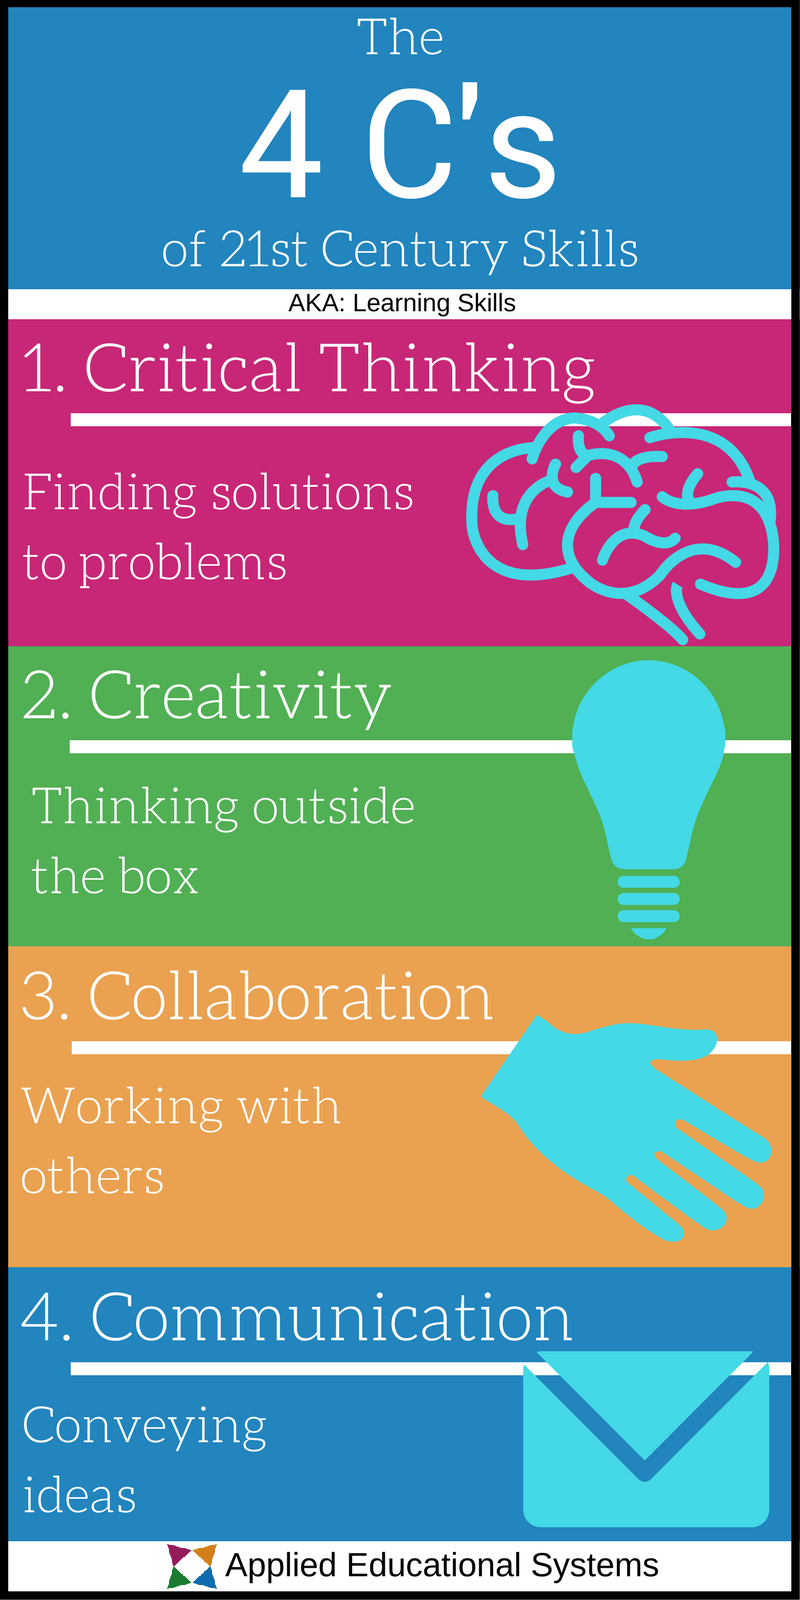 4-cs-of-21st-century-skills-infographic.png